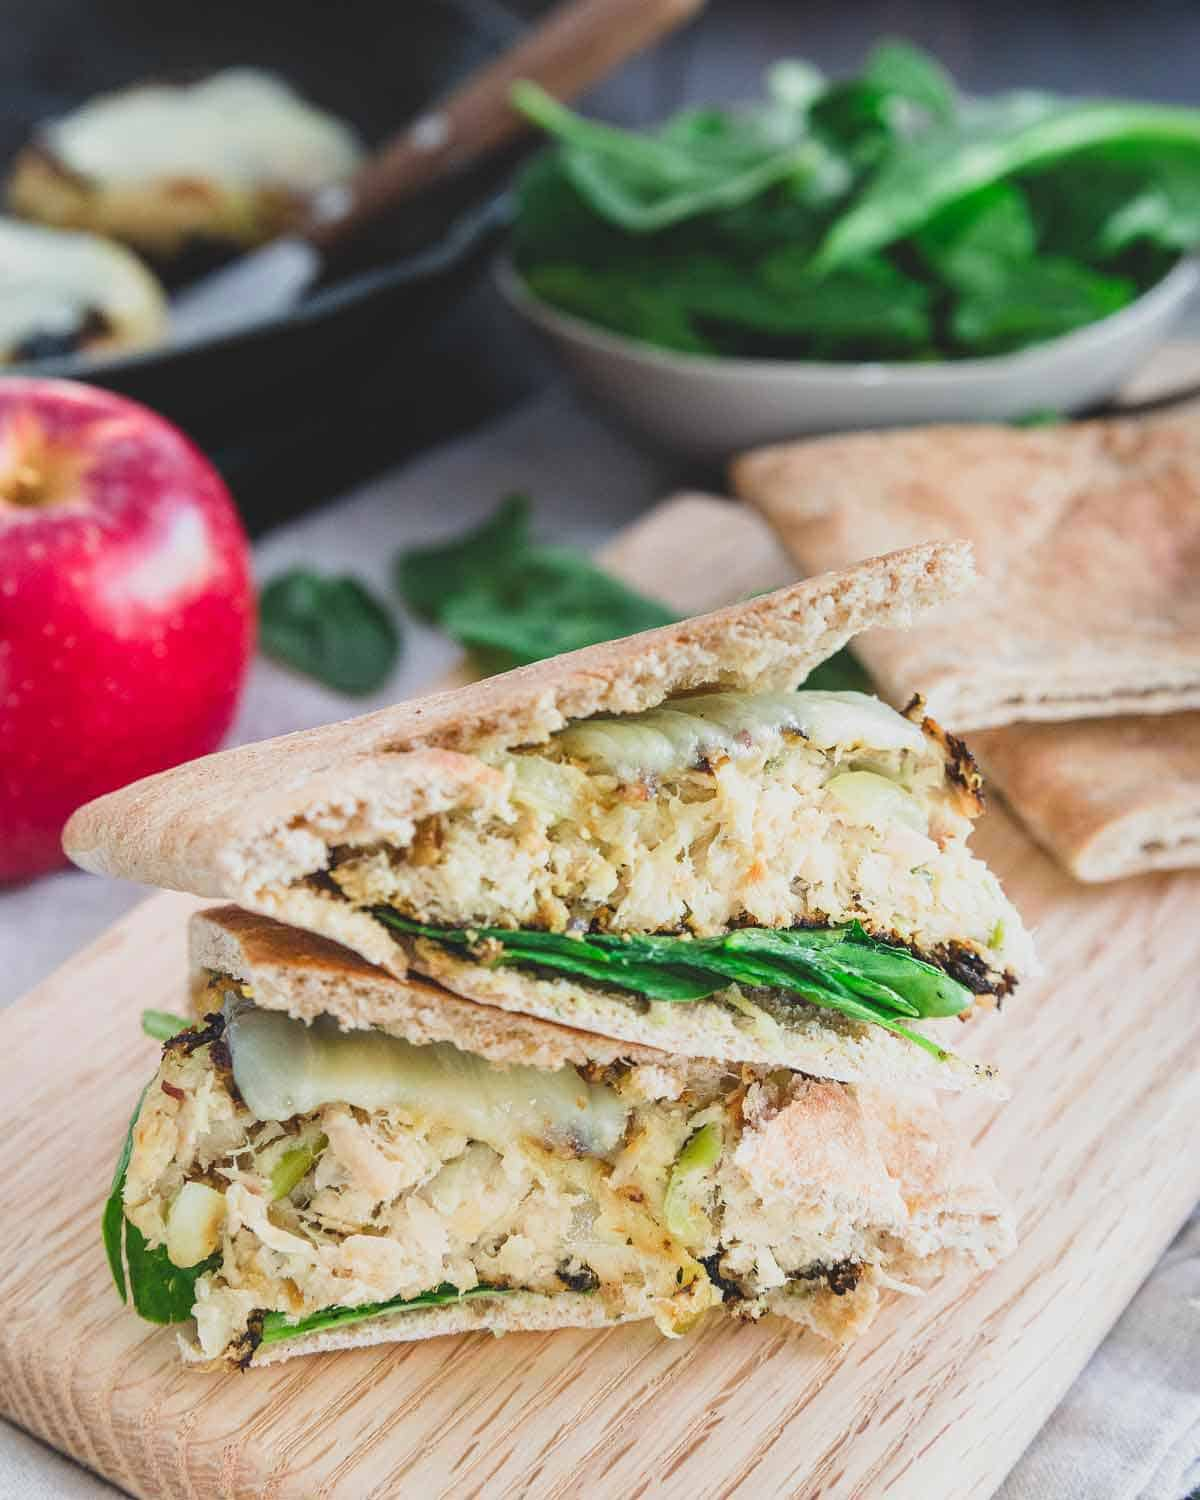 These healthy tuna patties are made with wild-caught canned albacore tuna, freshly grated apples and cheddar cheese - a simple recipe for a delicious lunch!